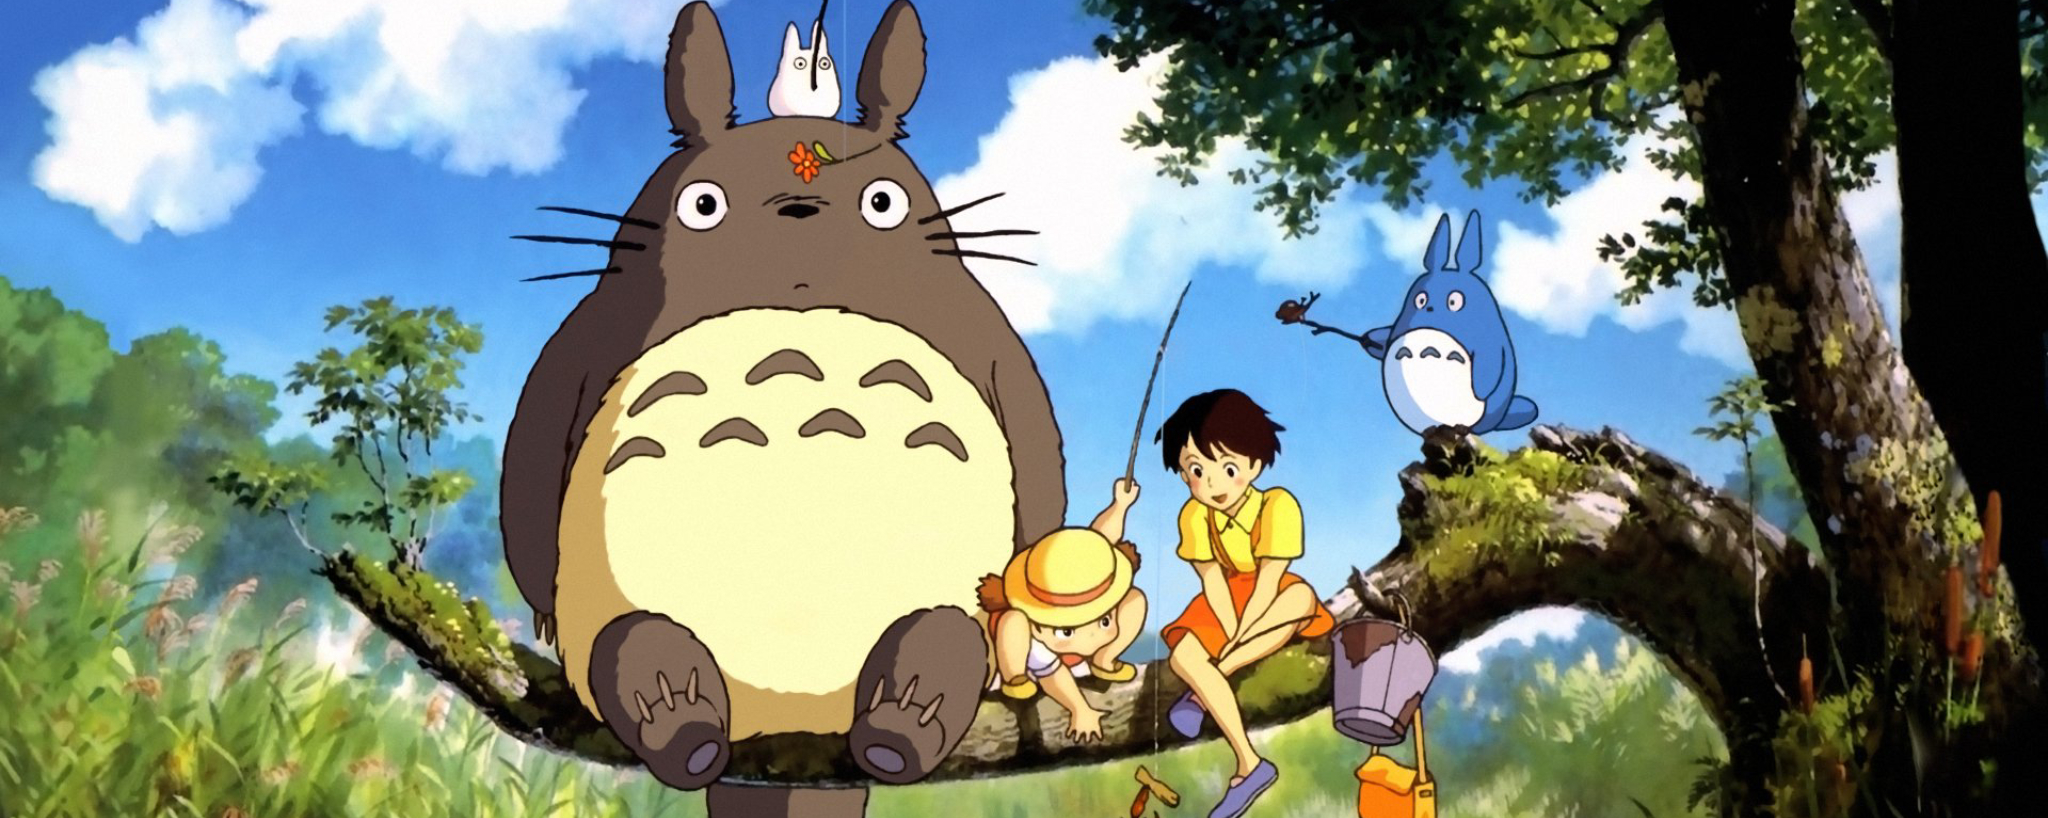 Totoro sitting on a tree branch